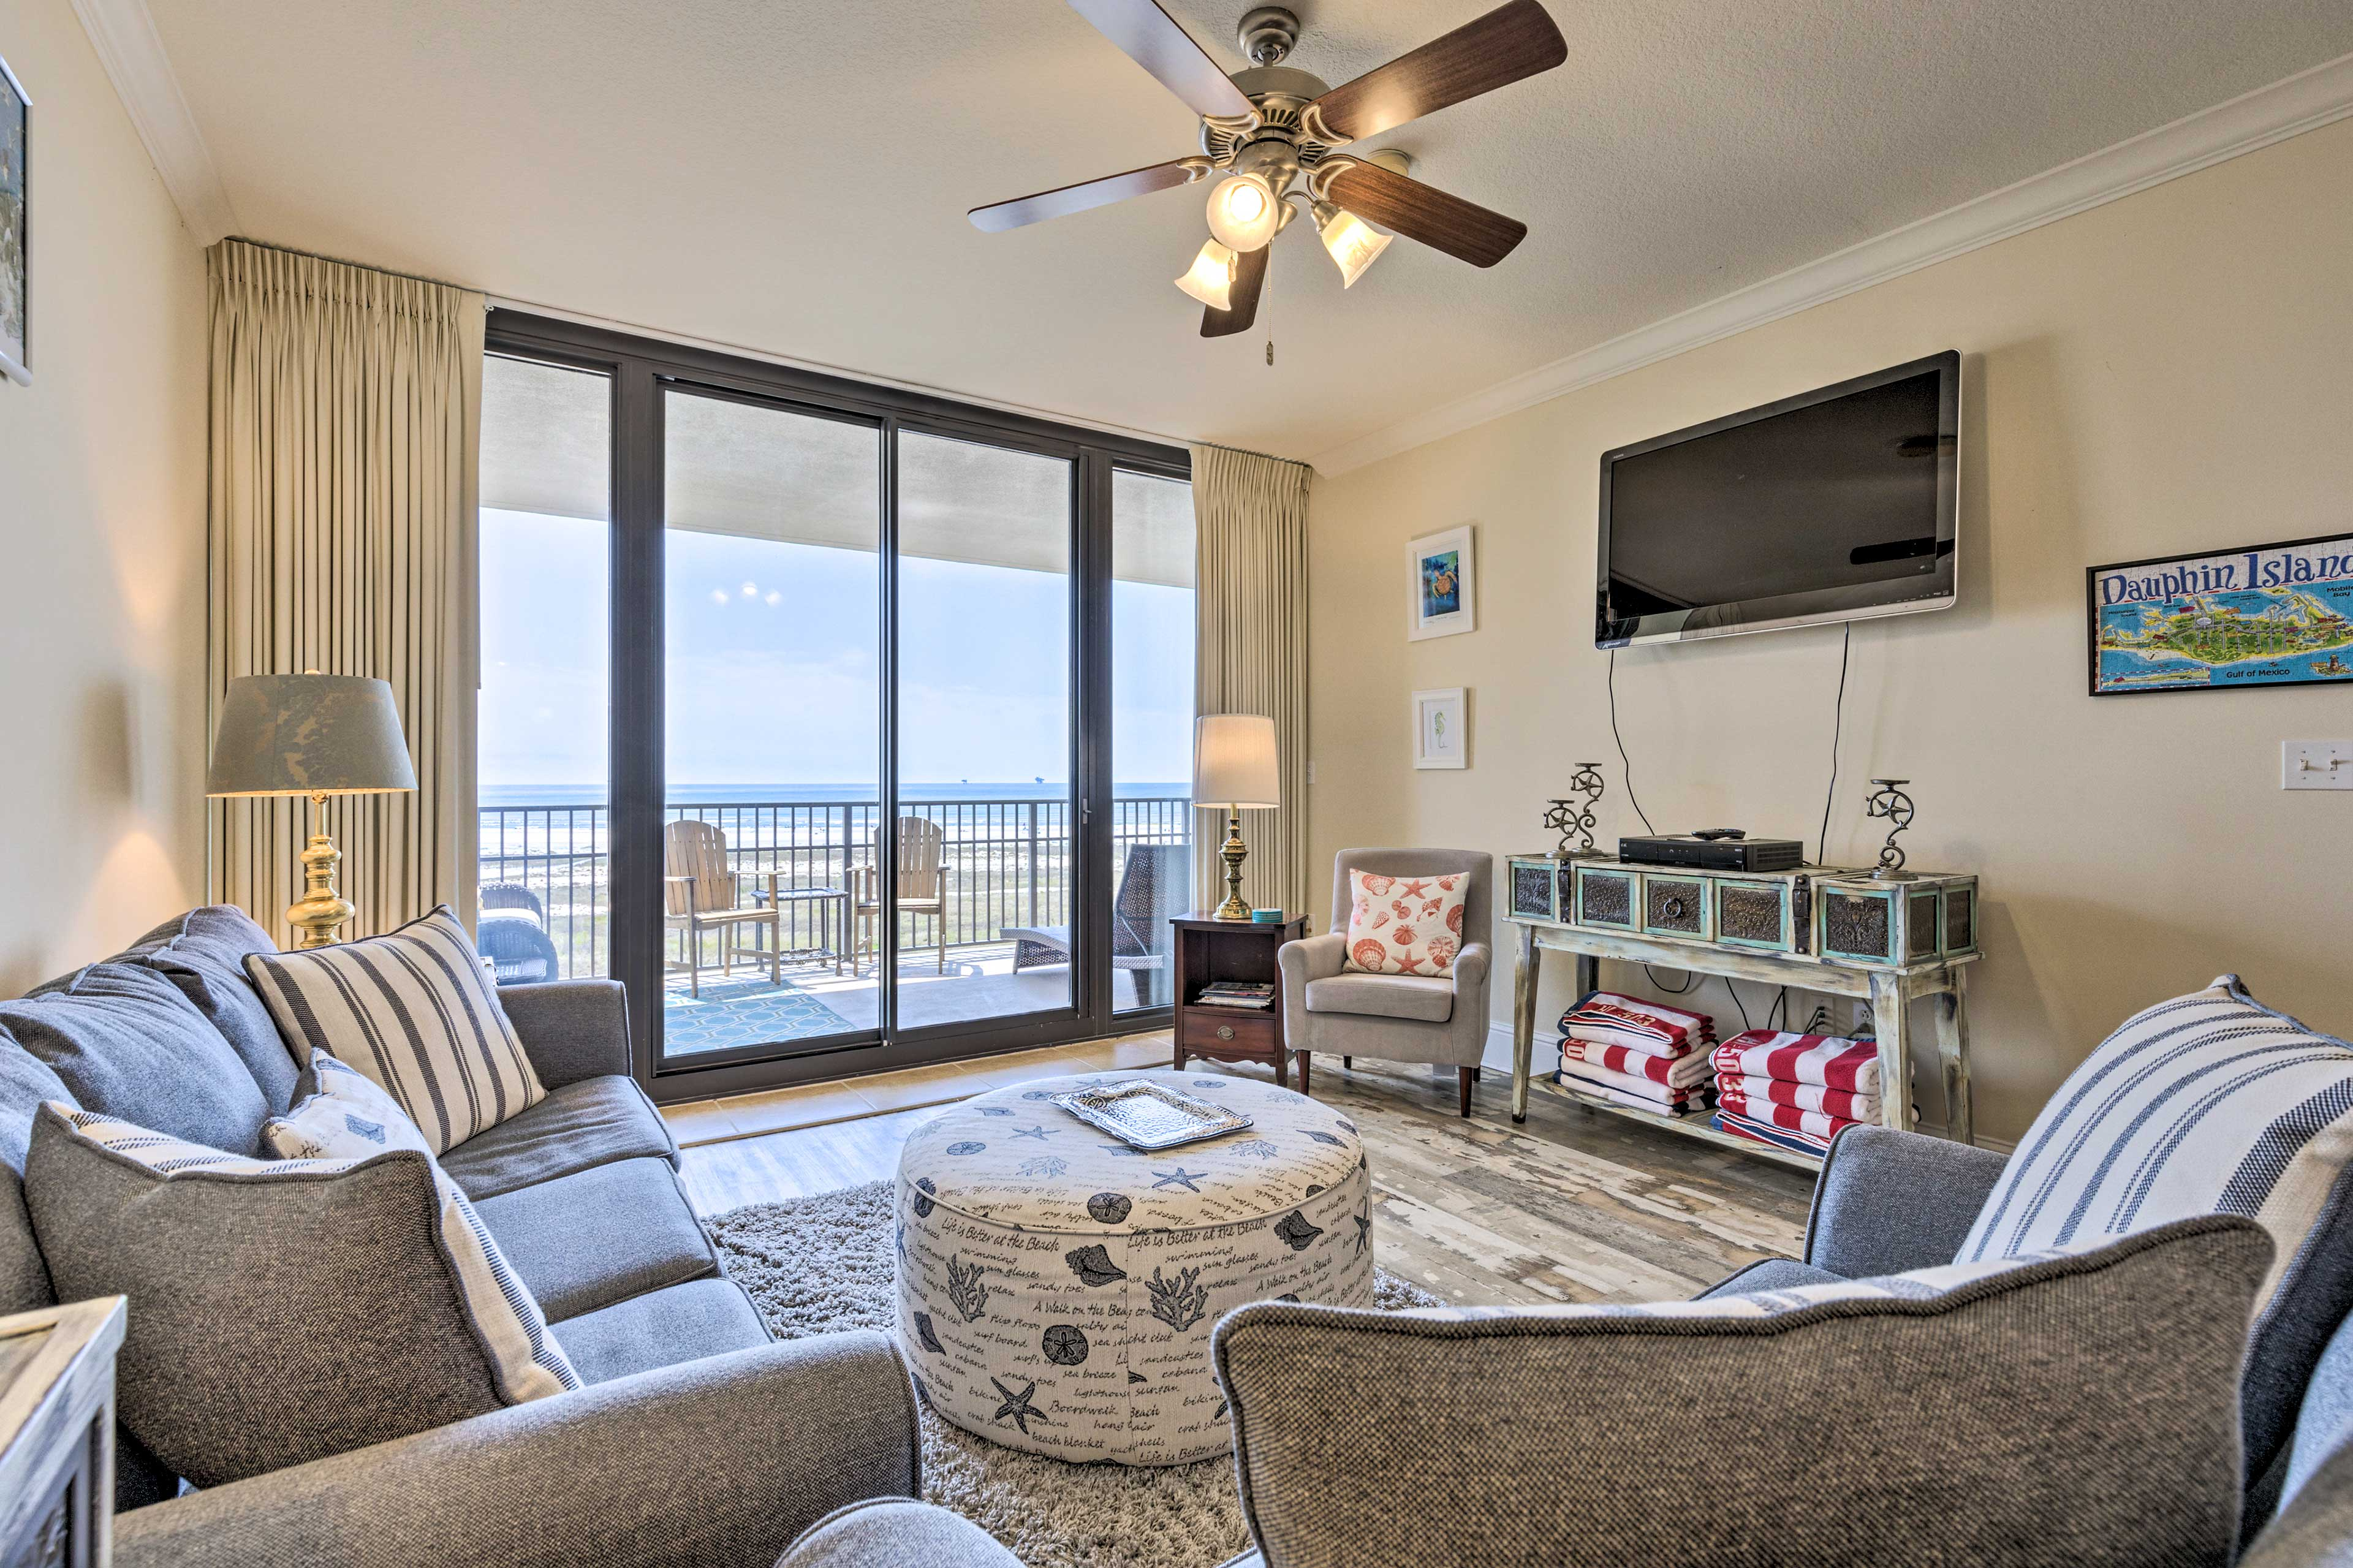 Up to 8 guests can stay at this charming, 5th-floor condo.